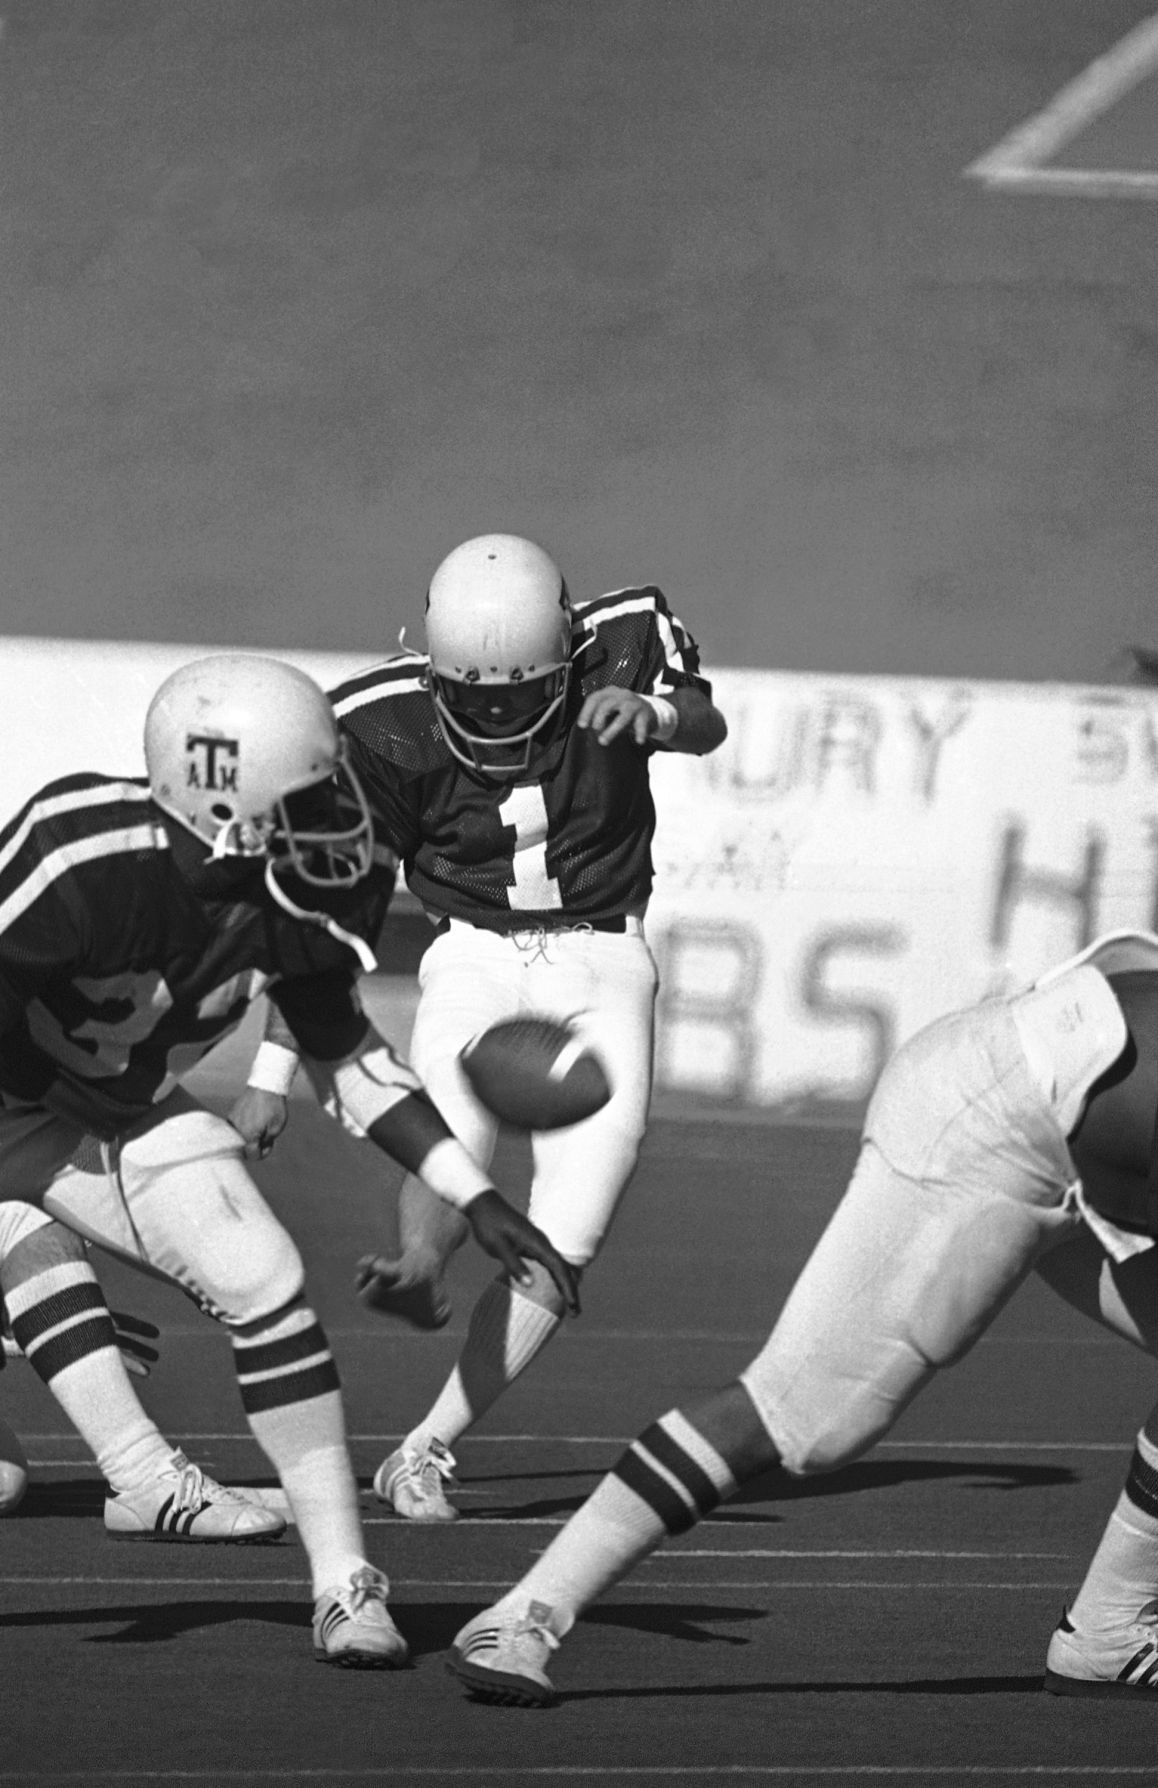 df191d2c8d0 Texas A&M's Tony Franklin lets loose with a 62-yard field goal during a game  against Florida in the Sun Bowl on Jan. 2, 1977 in El Paso.